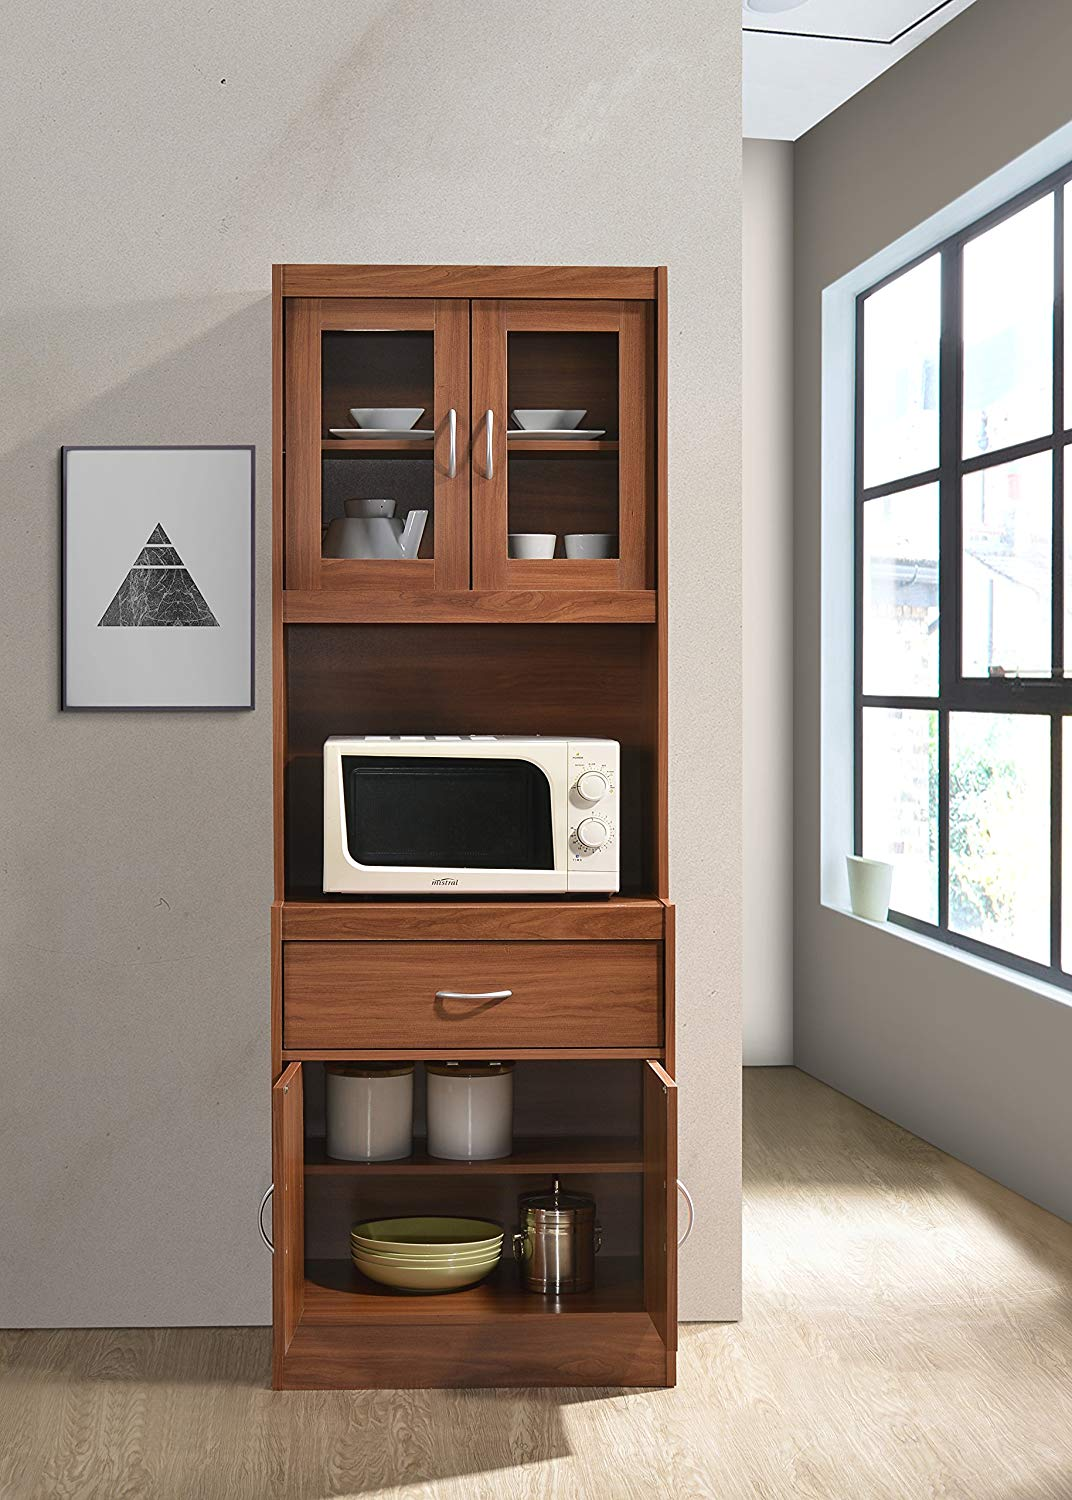 Details About Door Cabinet Wood Tall Microwave Kitchen Storage Cupboard Pantry Bar Organizer